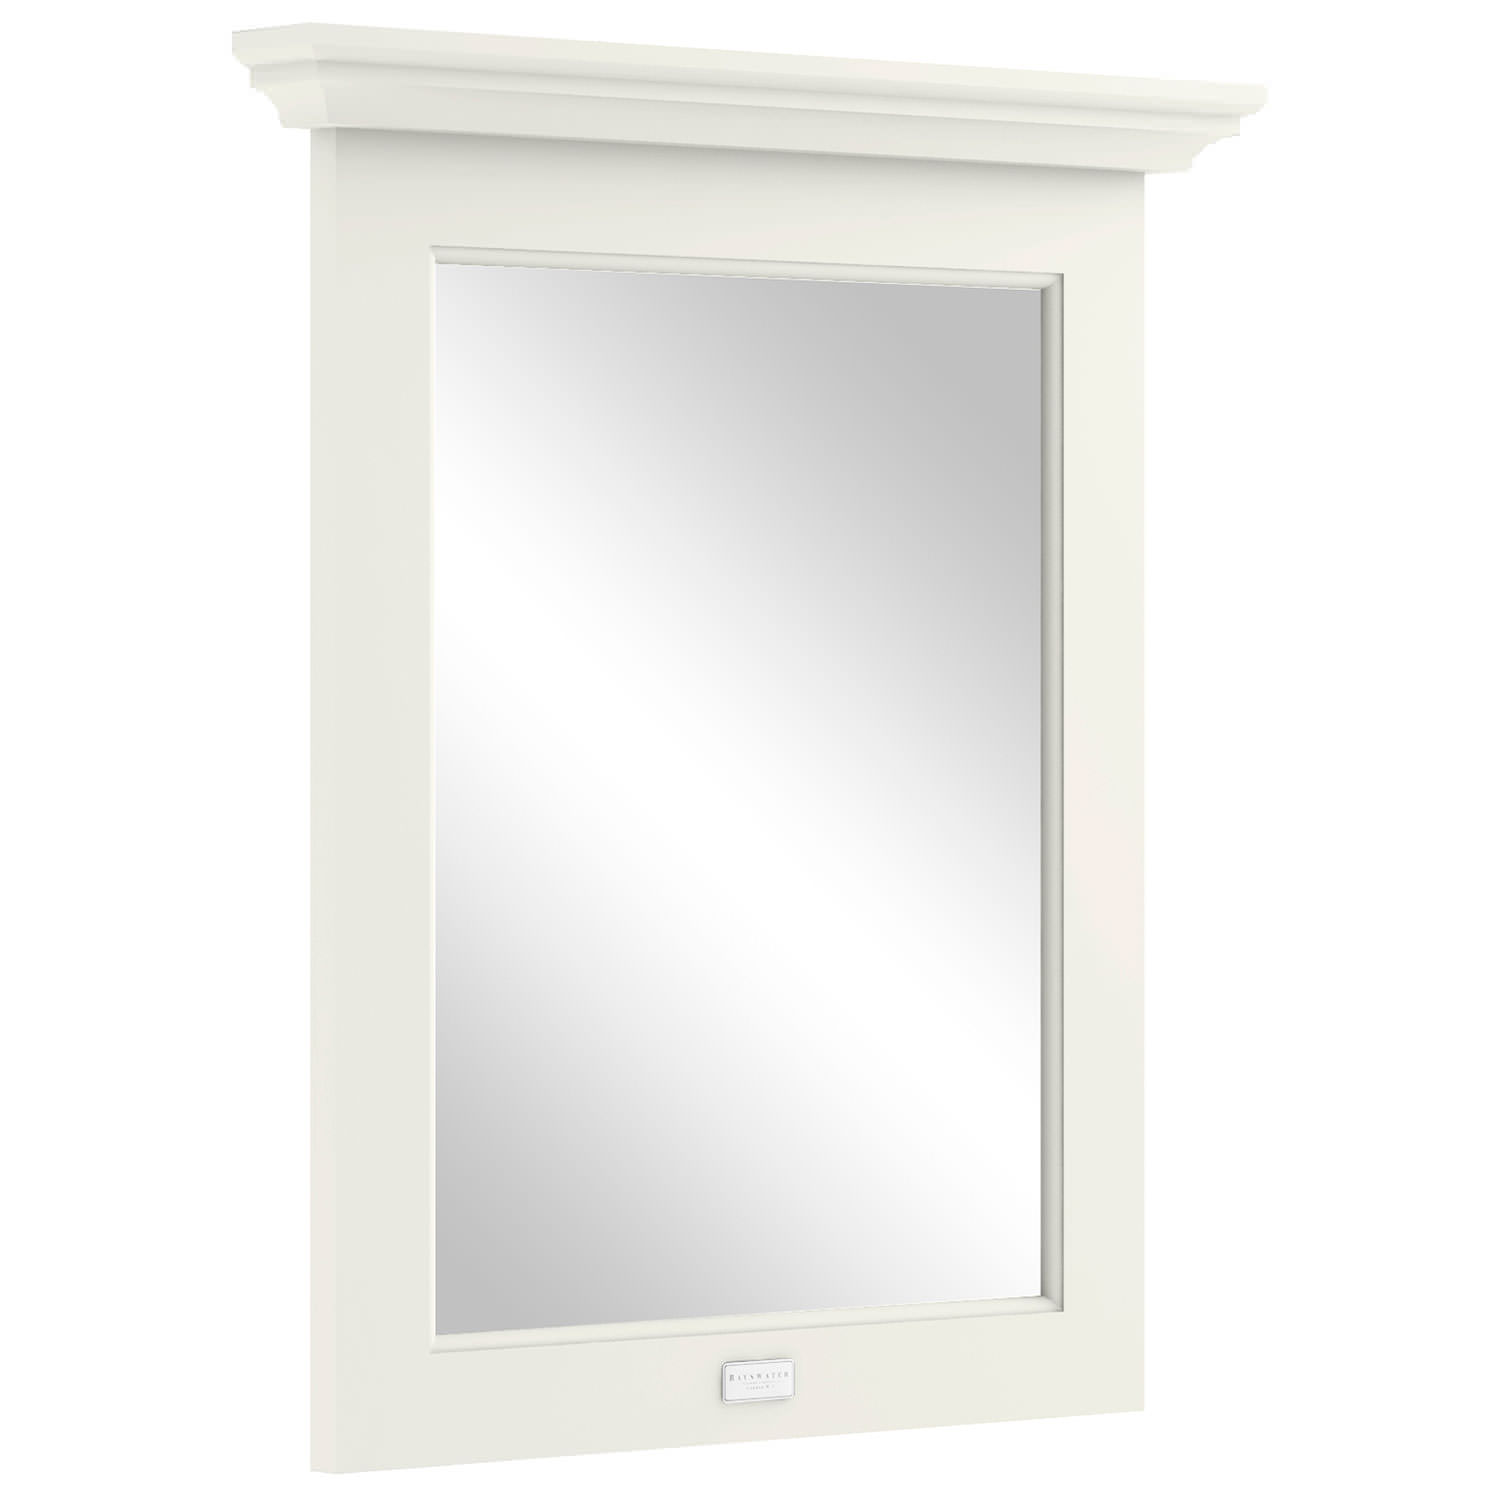 Bayswater 600mm Flat Mirror Bayf124 More Finishes